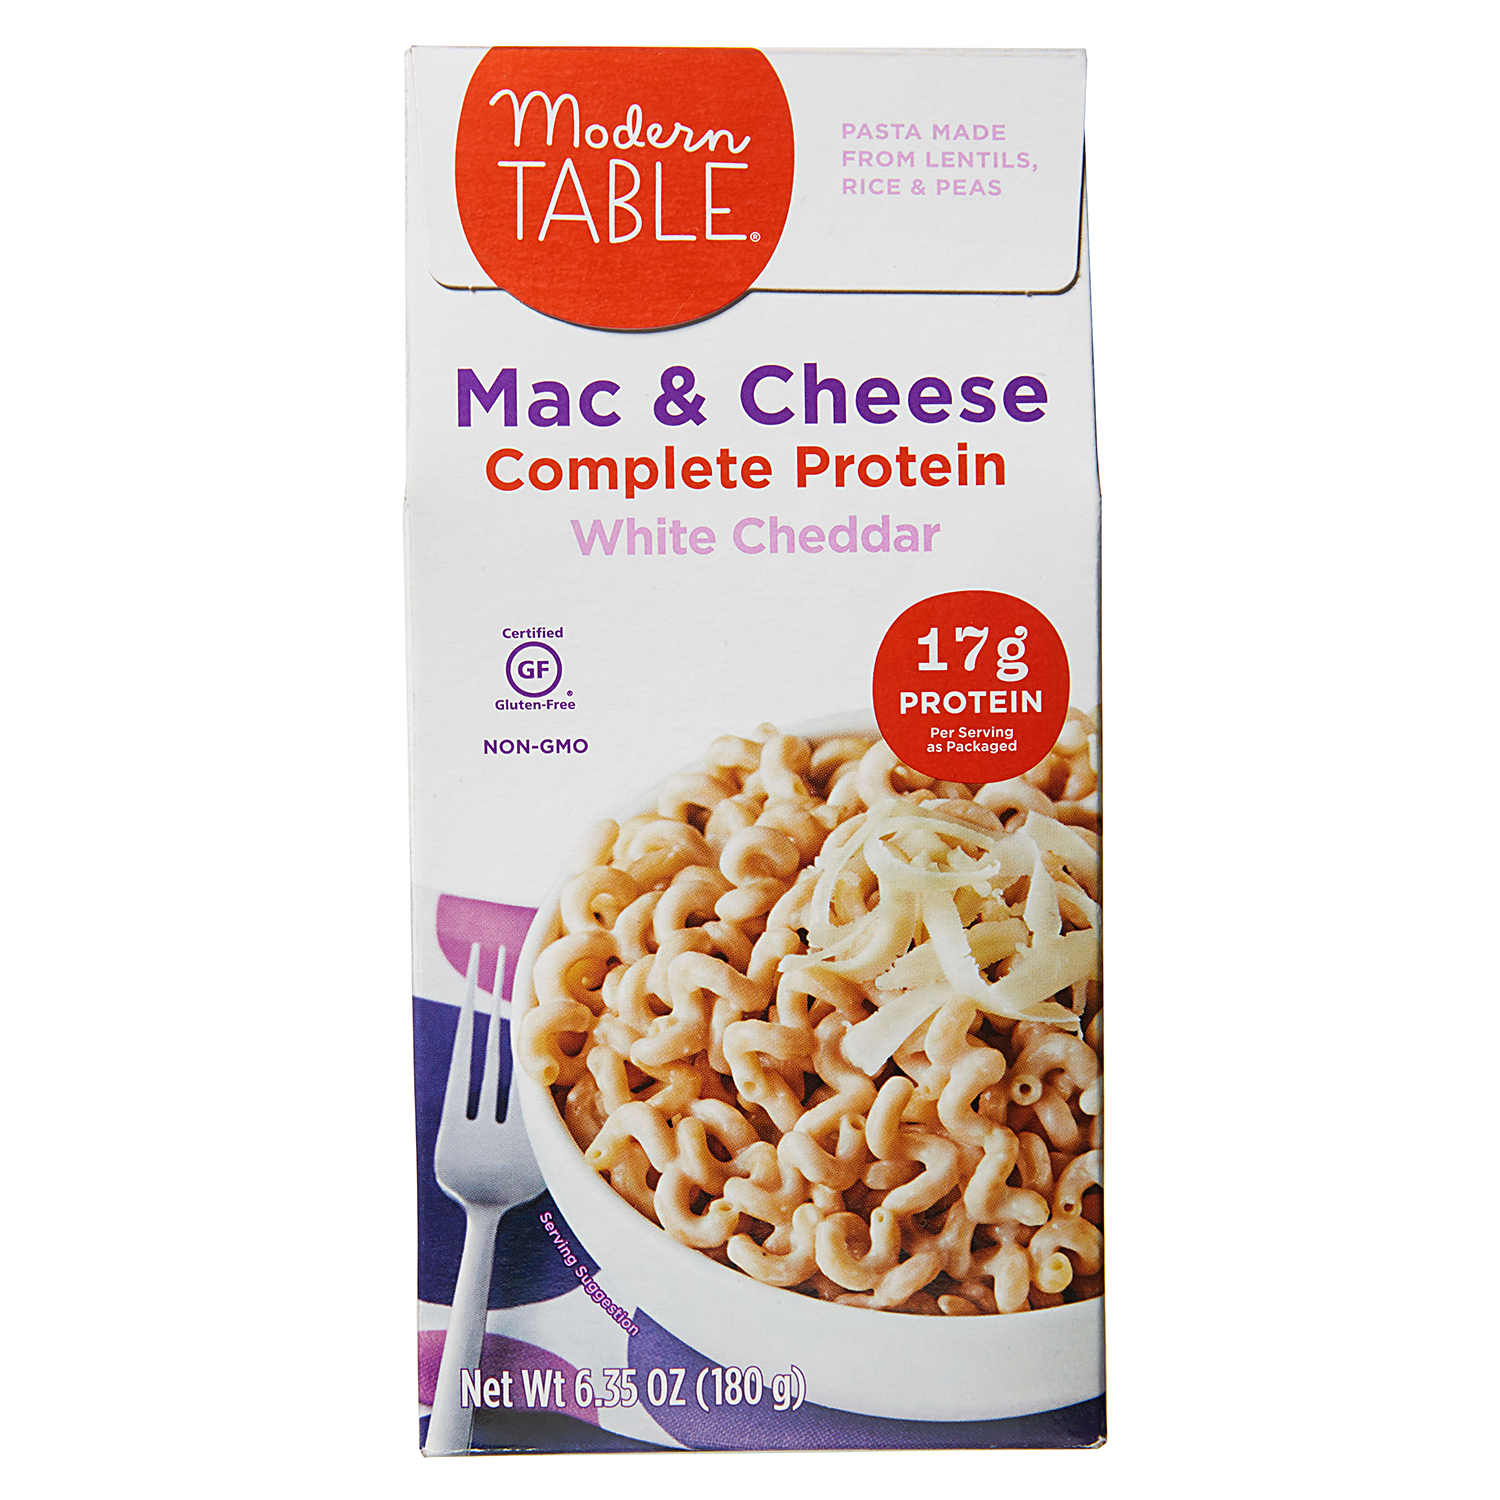 Modern Table Mac & Cheese Complete Protein White Cheddar package